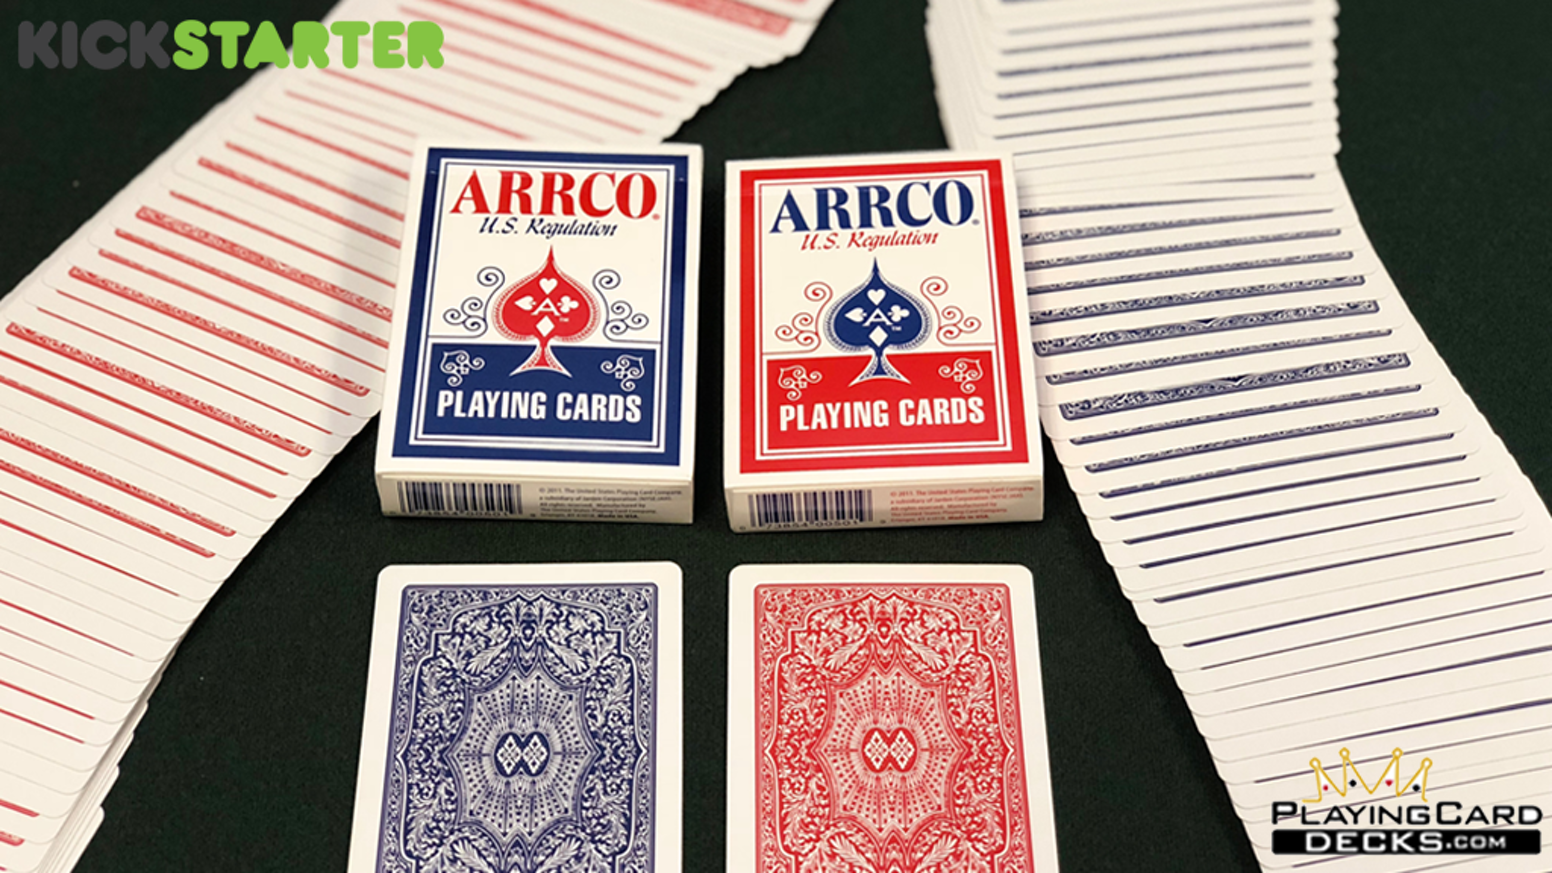 Poker Size Deck Printed by USPCC  - Made in the USA - Traditional Cut, Embossed Finish, Tuck Case Reveal, Limited Edition of 2500 Each.